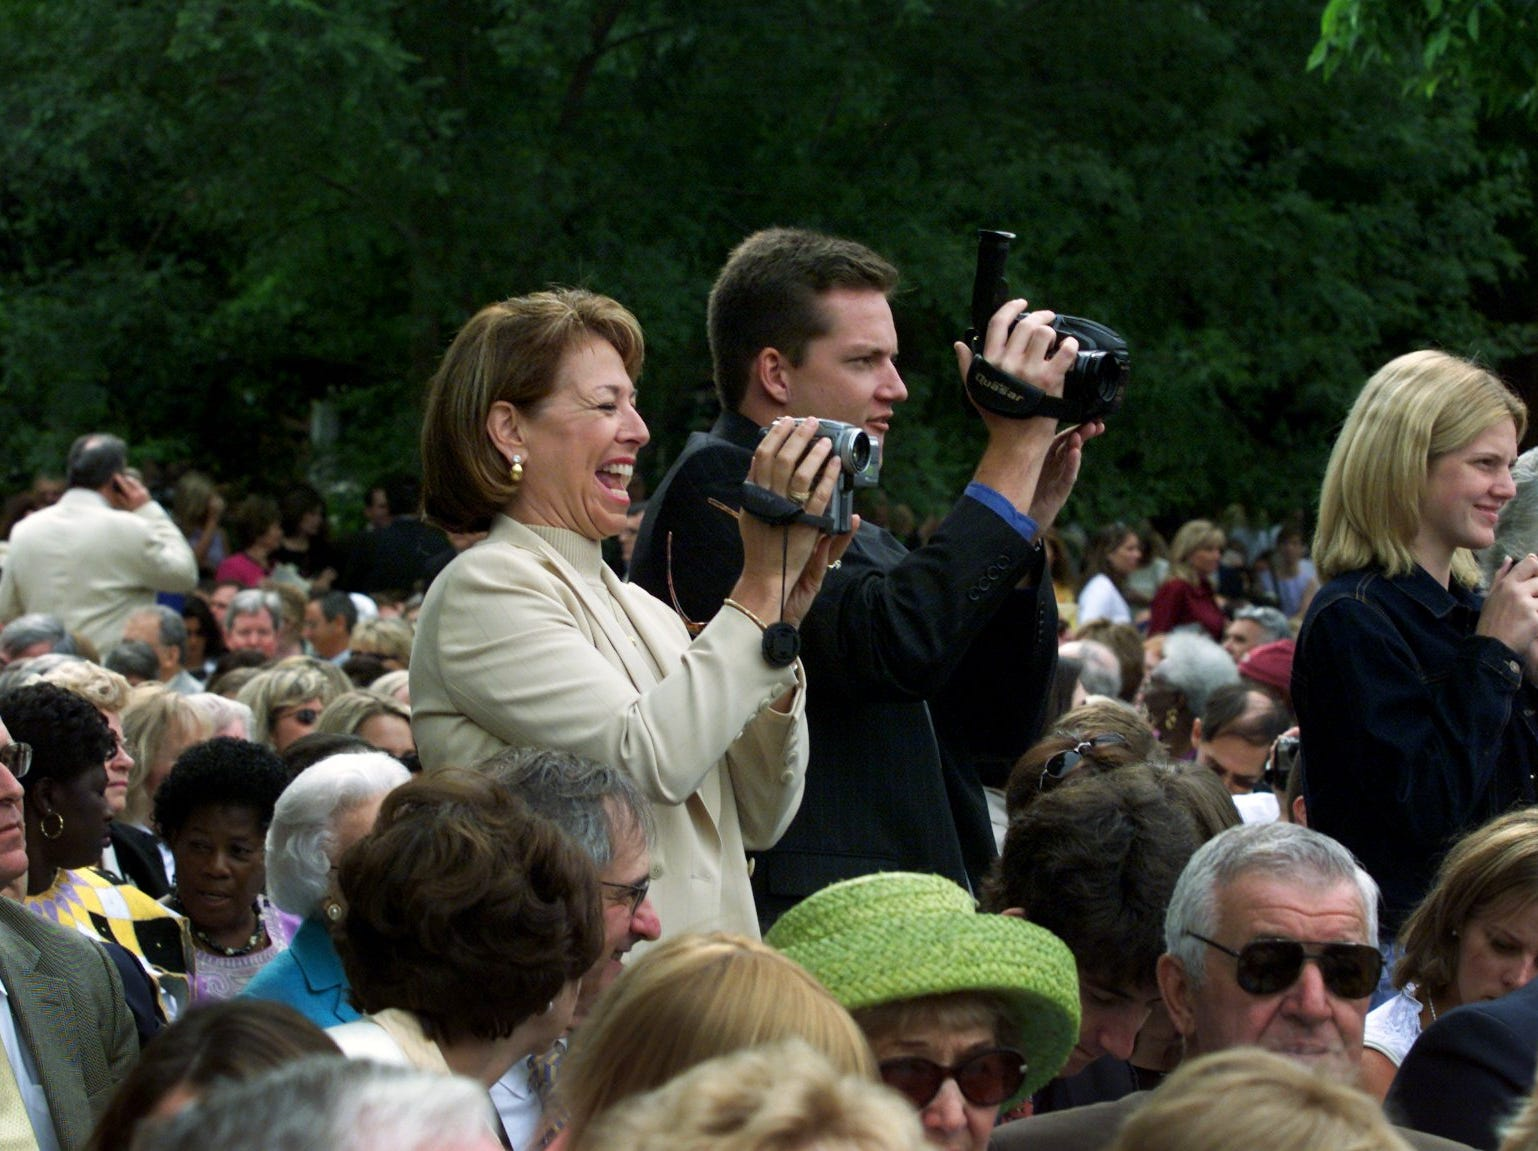 Nancy Walkenhorst, of Joplin, Missouri, videotapes her daughter's boyfriend while Matt Tippy, of Florida, shoots his brother during the 2002 commencement ceremony at Vanderbilt University.